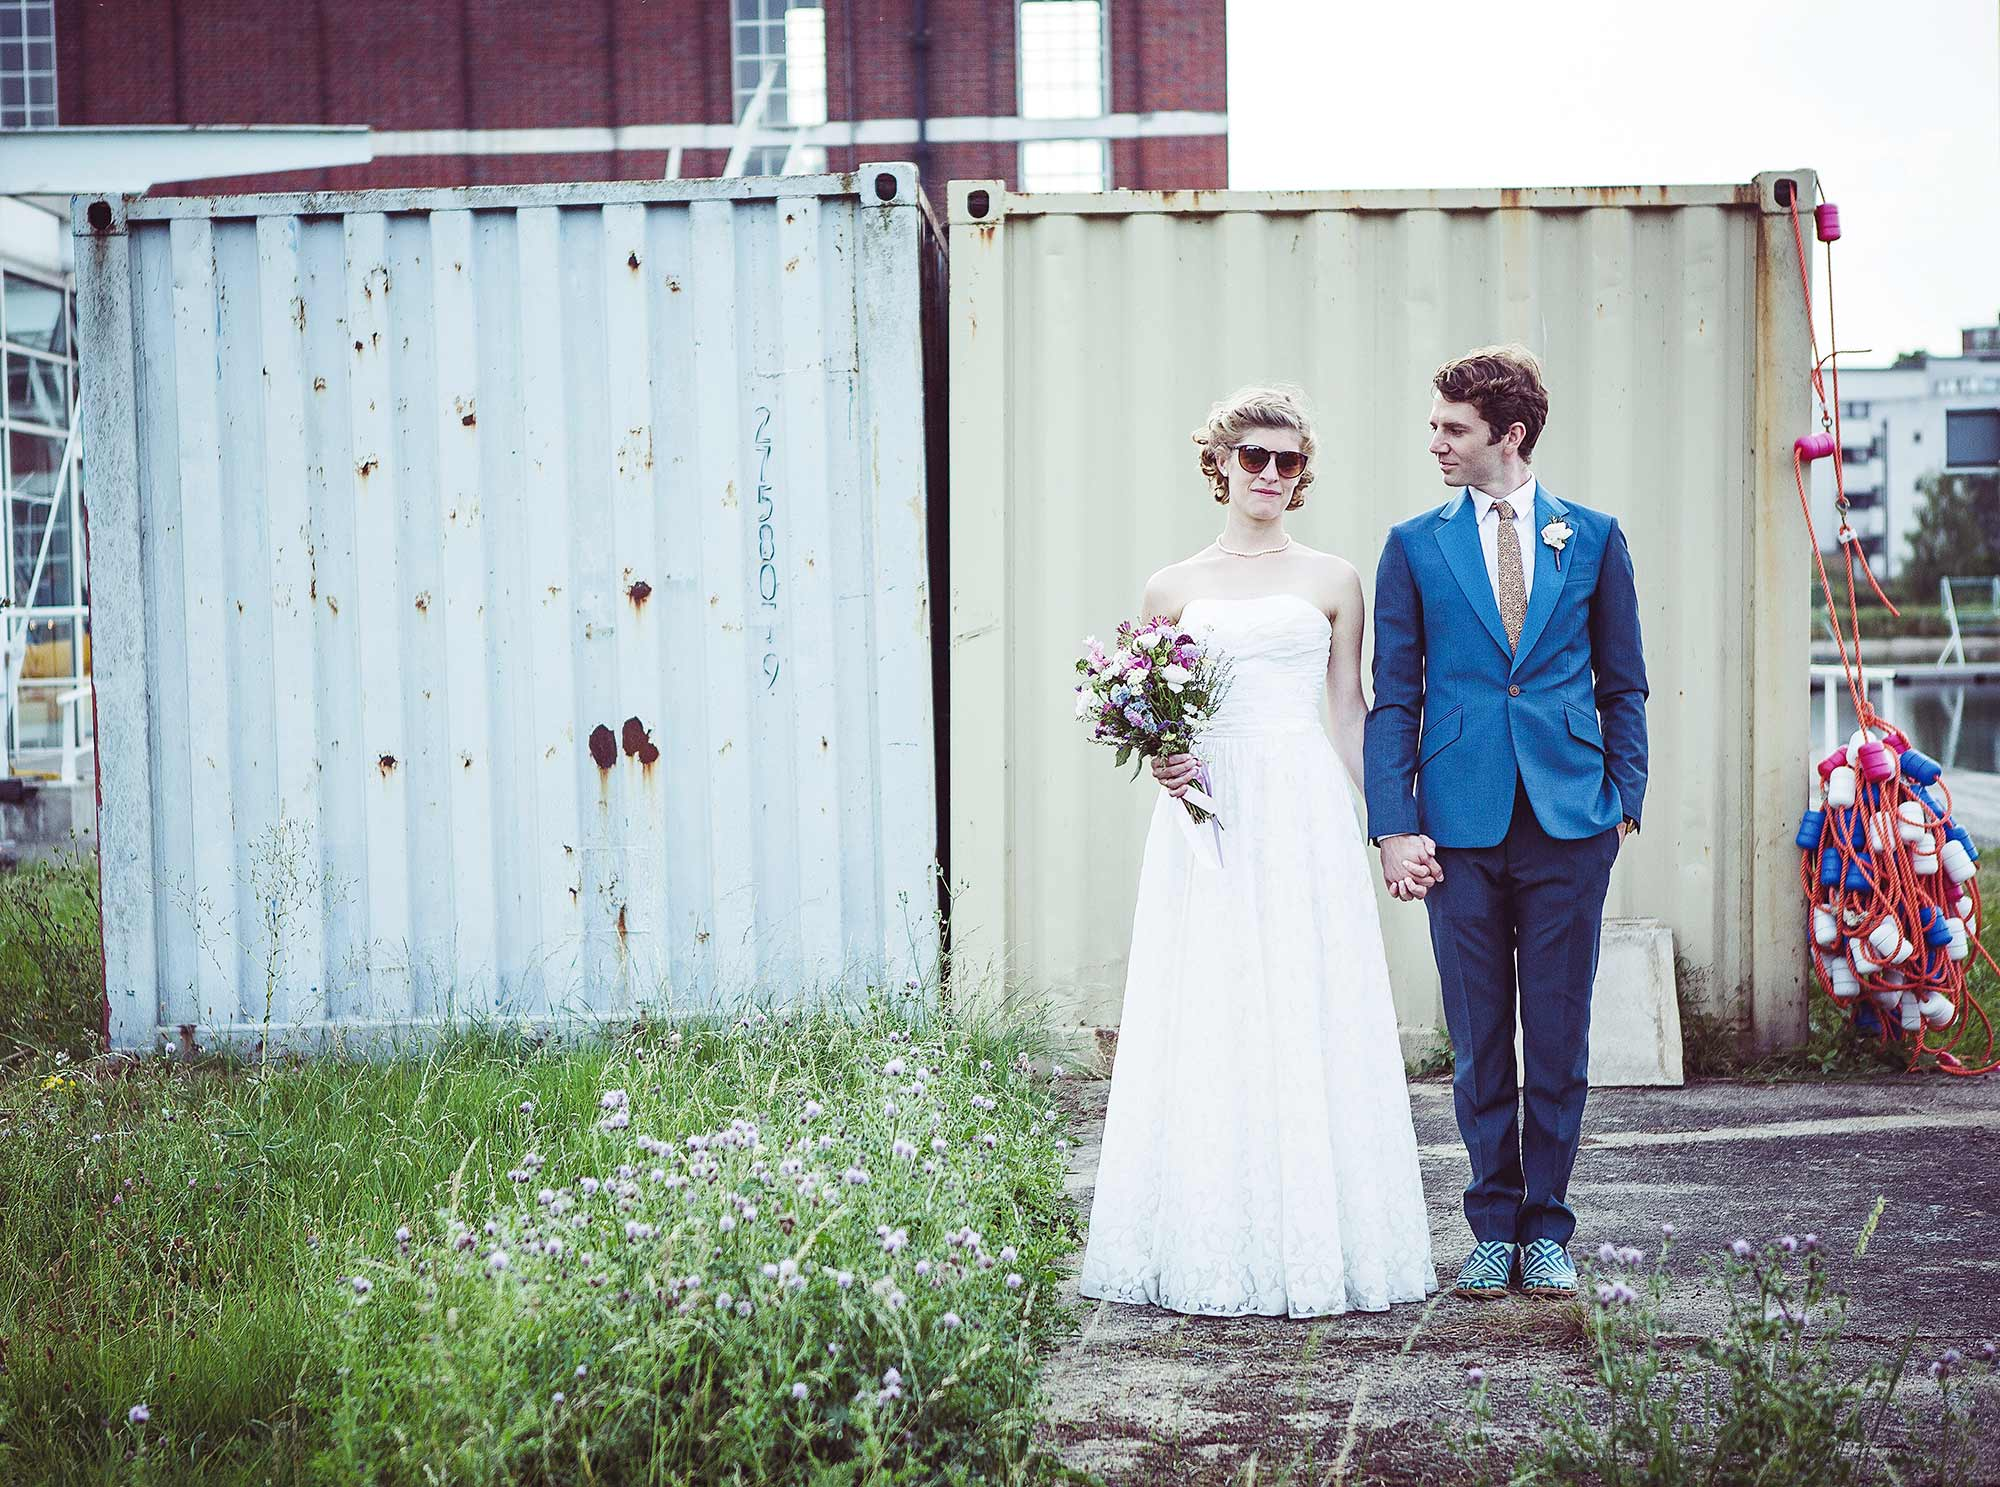 Wedding Photography at The Resevoir Centre, London